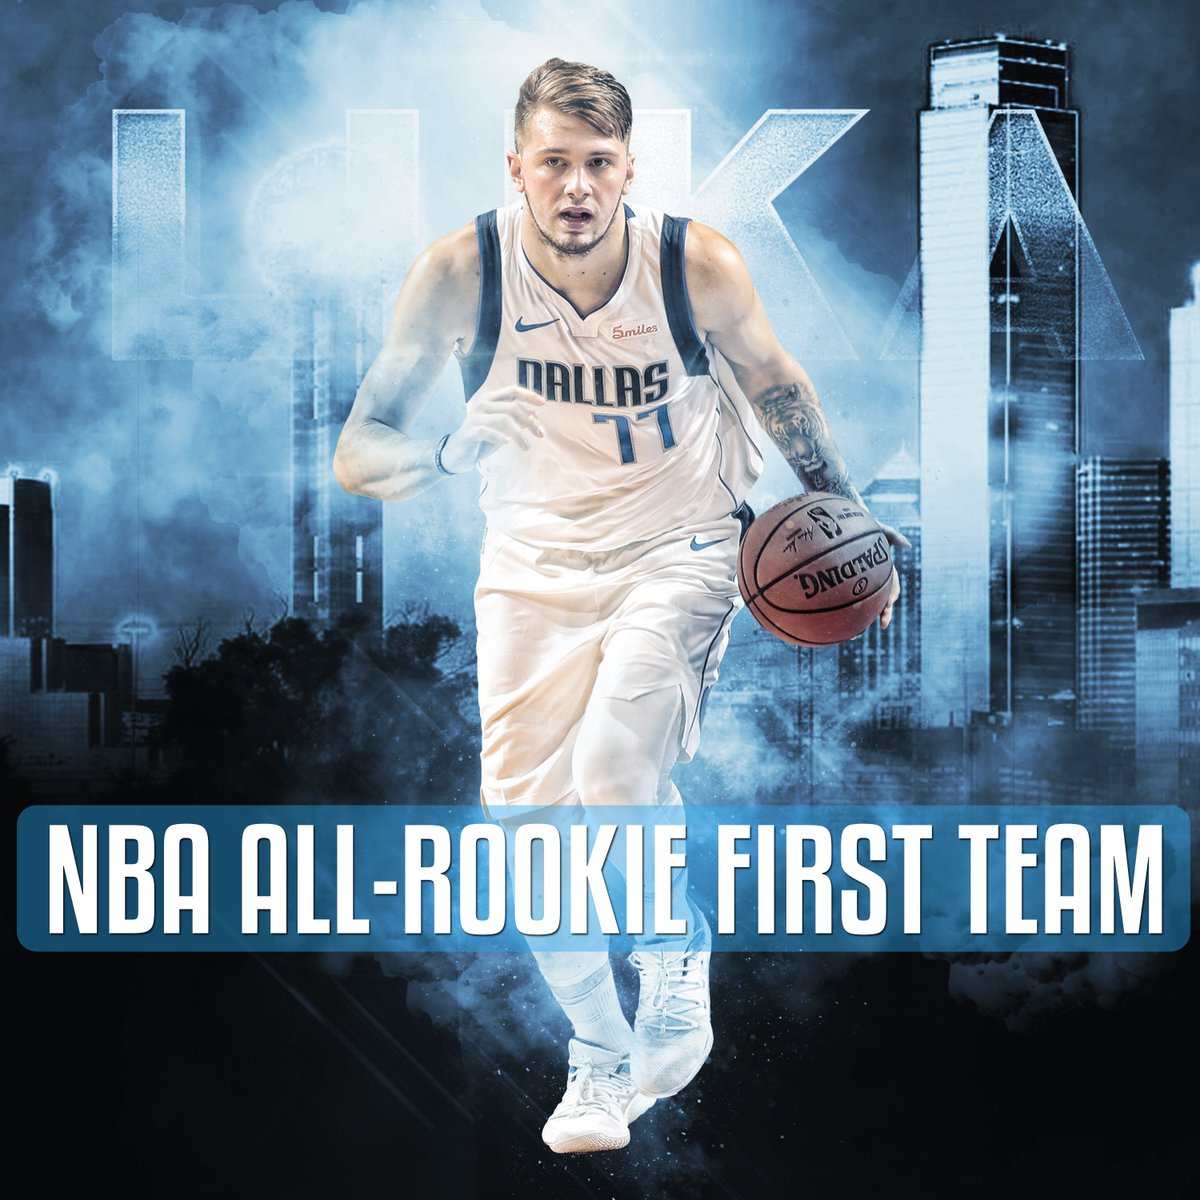 👏UNANIMOUS!👏  Congrats to @luka7doncic for being unanimously selected to the 2018-19 NBA All-Rookie First Team after receiving first-place votes on all 100 ballots from a global panel of sportswriters and broadcasters!  👆: http://on.mavs.com/trk/eosi